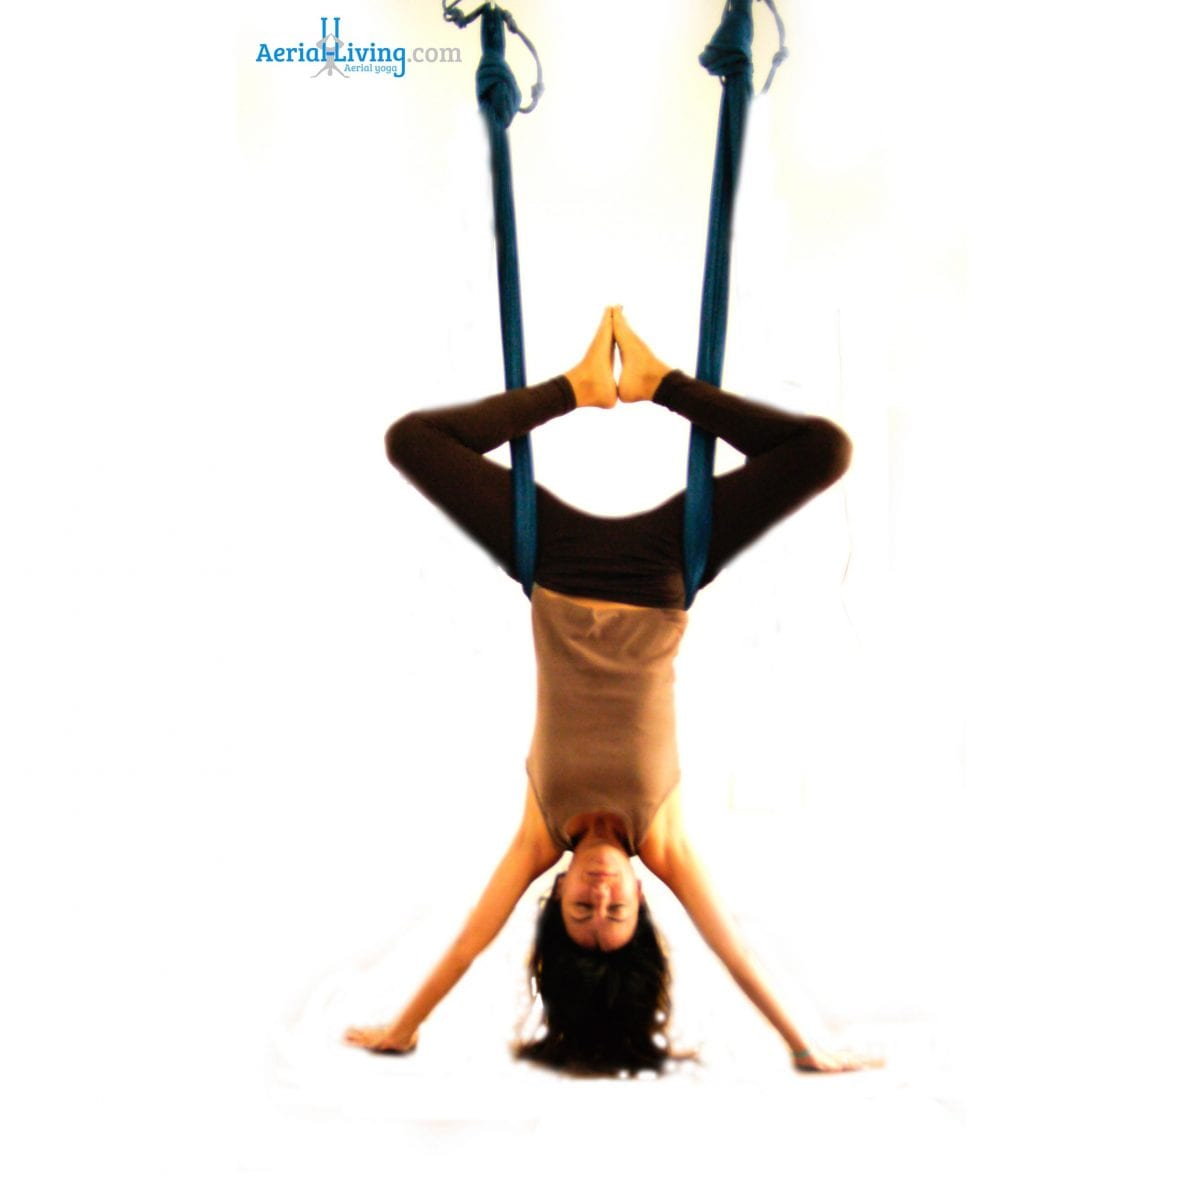 Aerial Yoga Swing Antigravity